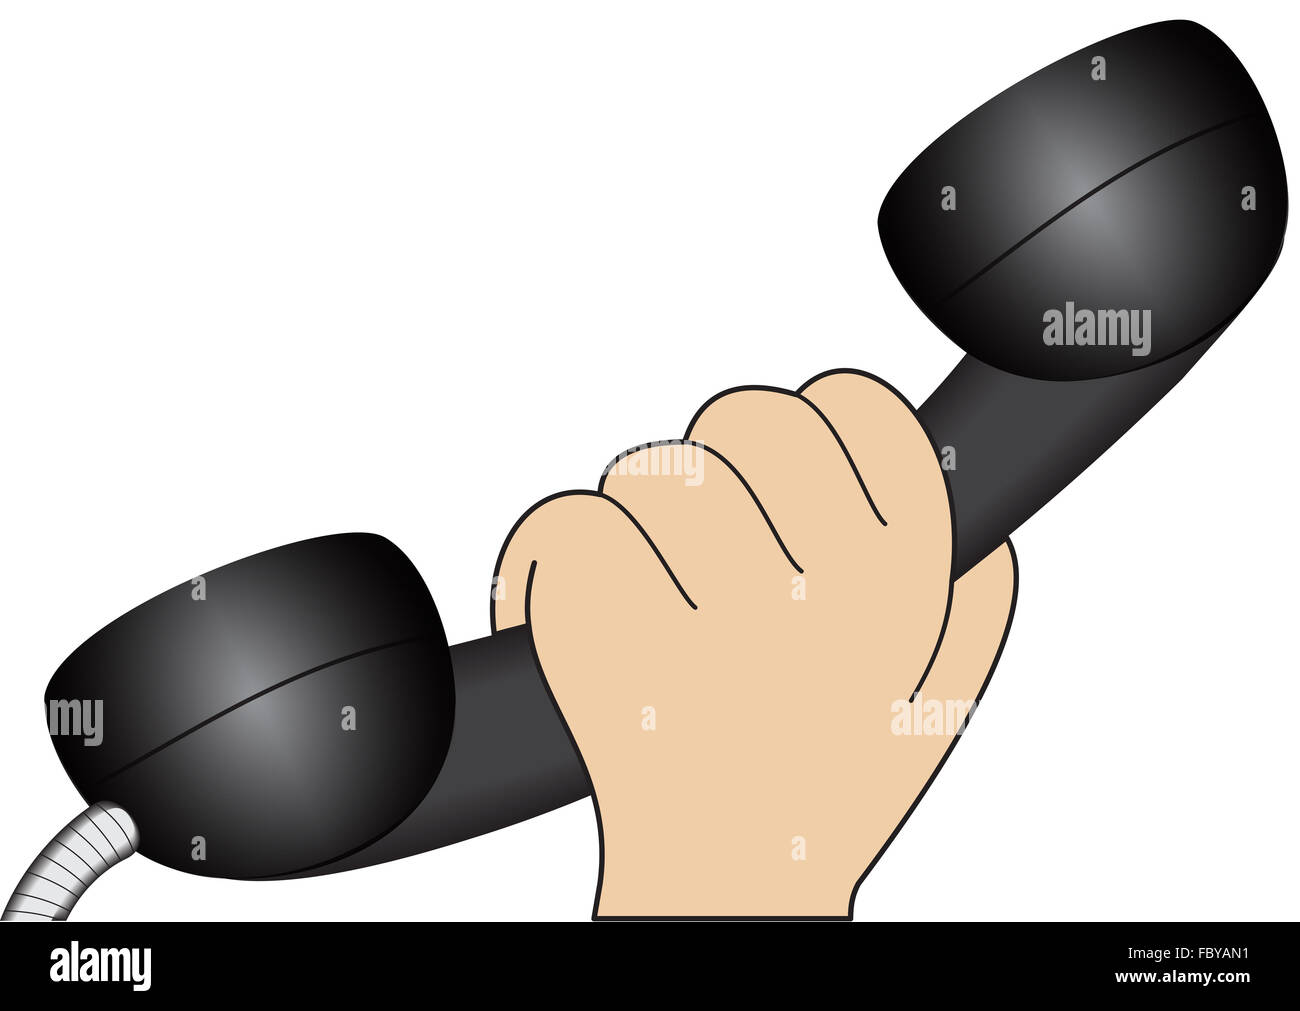 Hand with a telephone handset - Stock Image